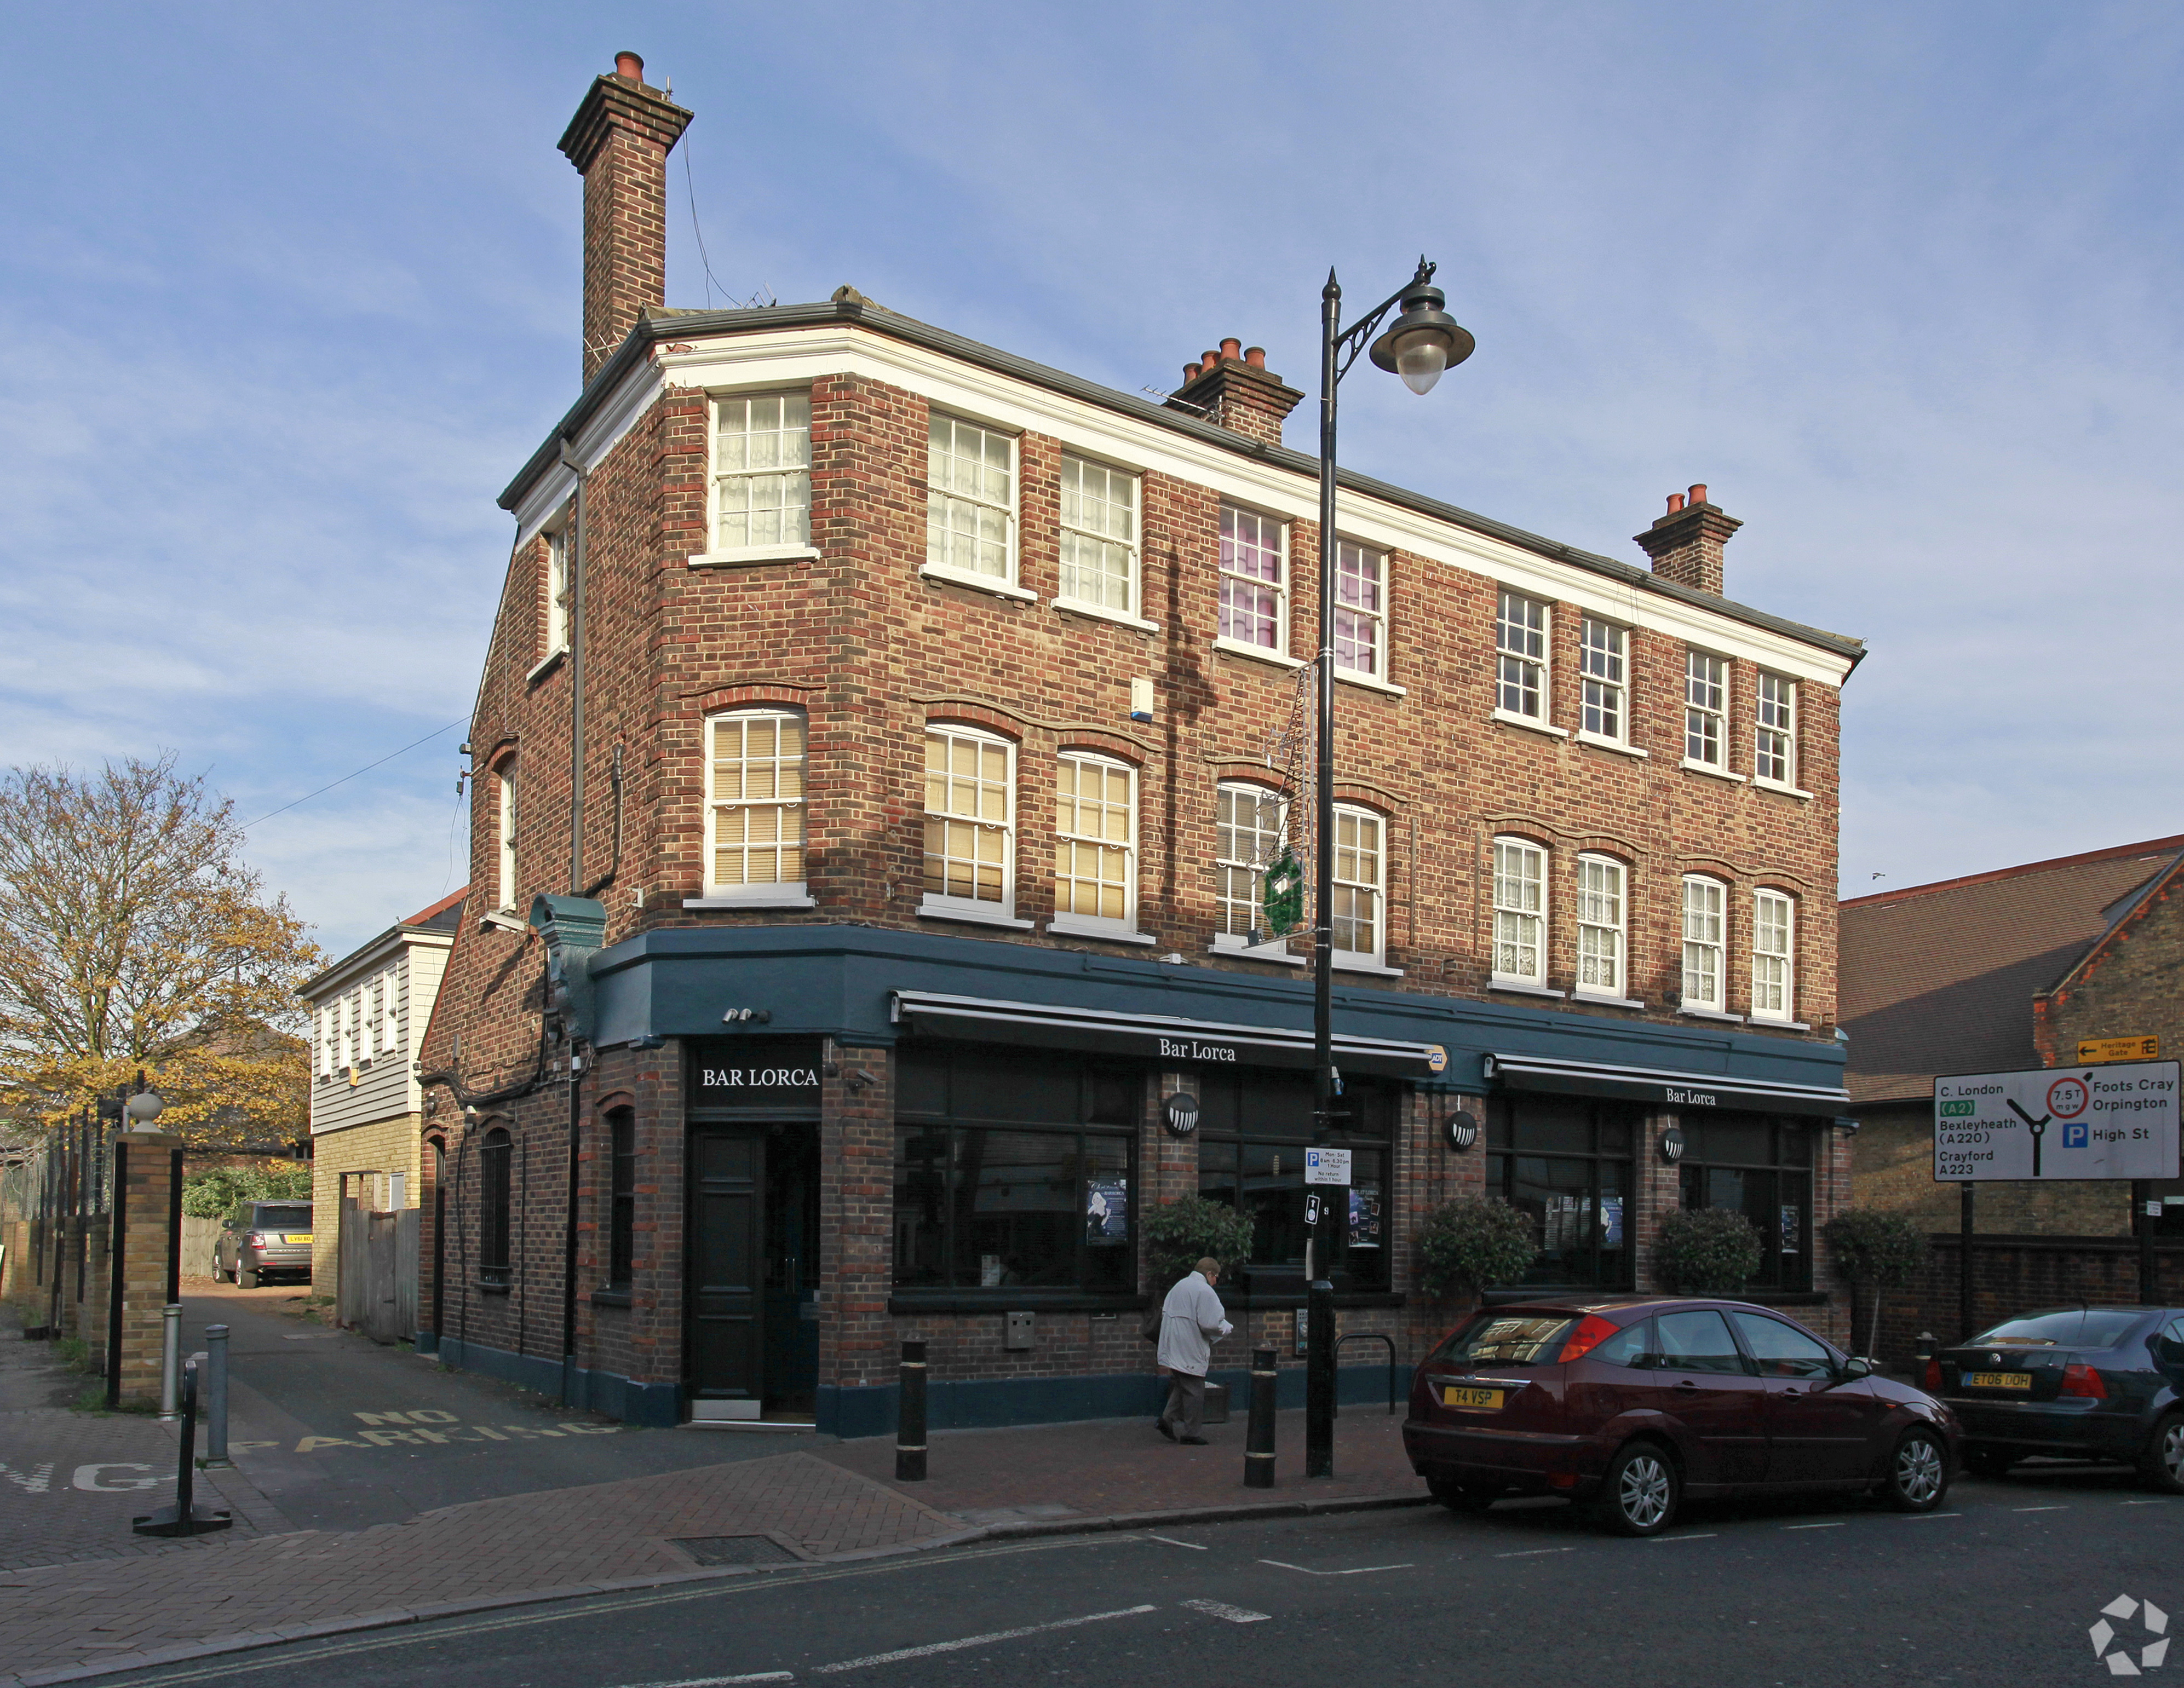 Commercial property area guide: Bexley - London